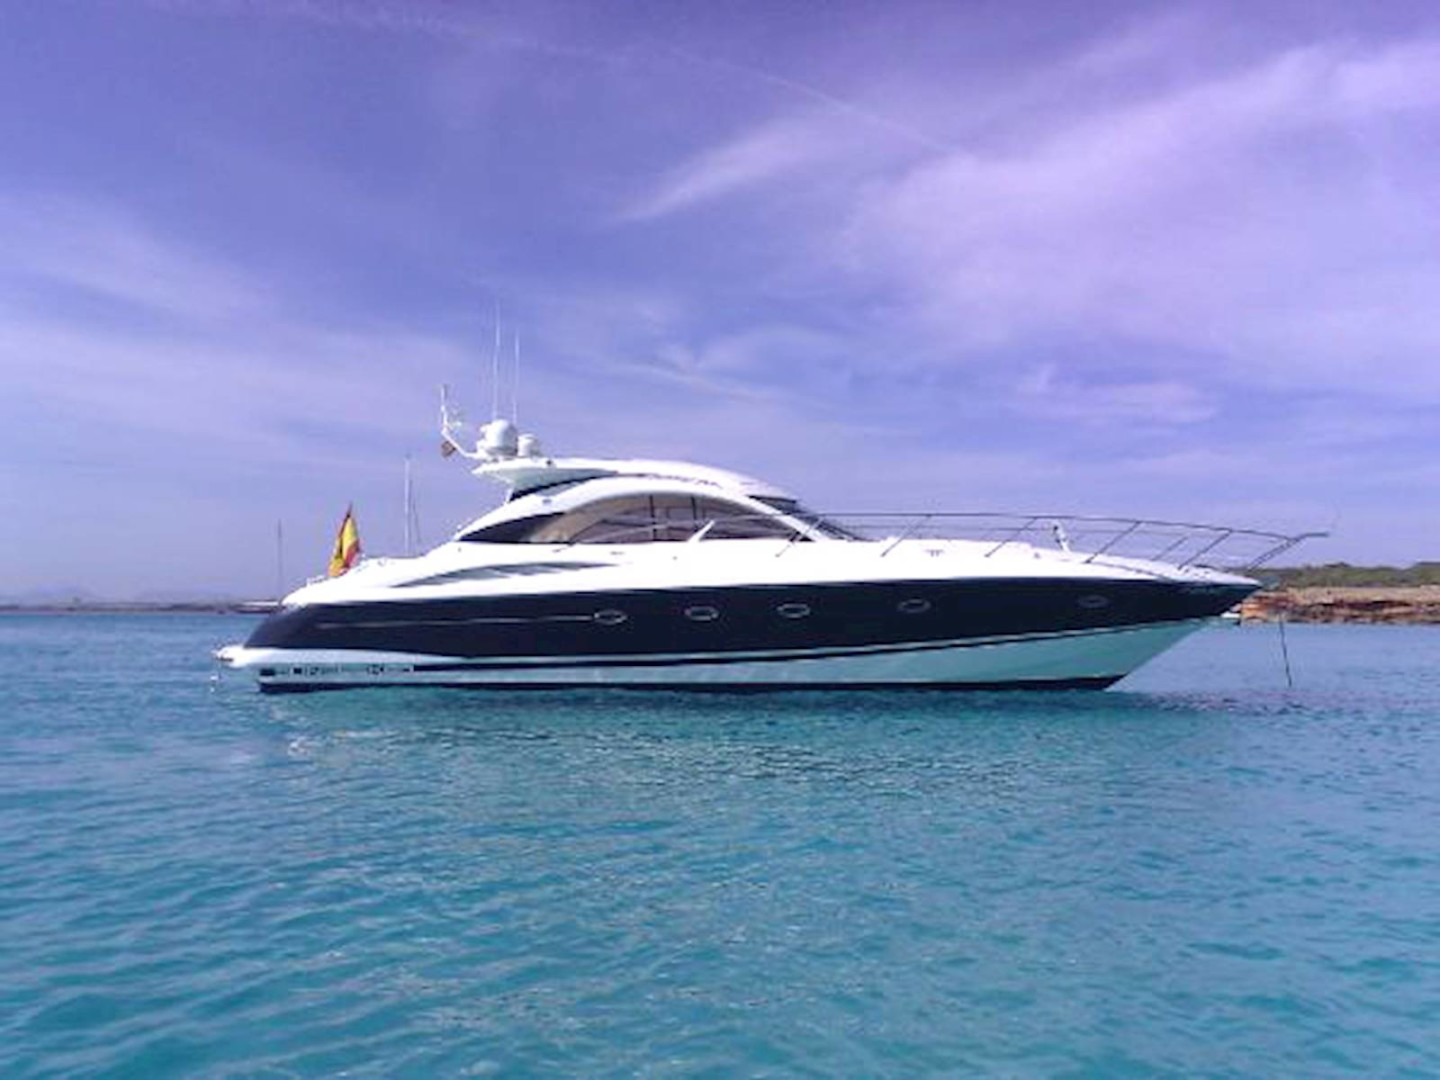 sailing croatia islands super yacht charter dubrovnik boat trips croatia honeymoon